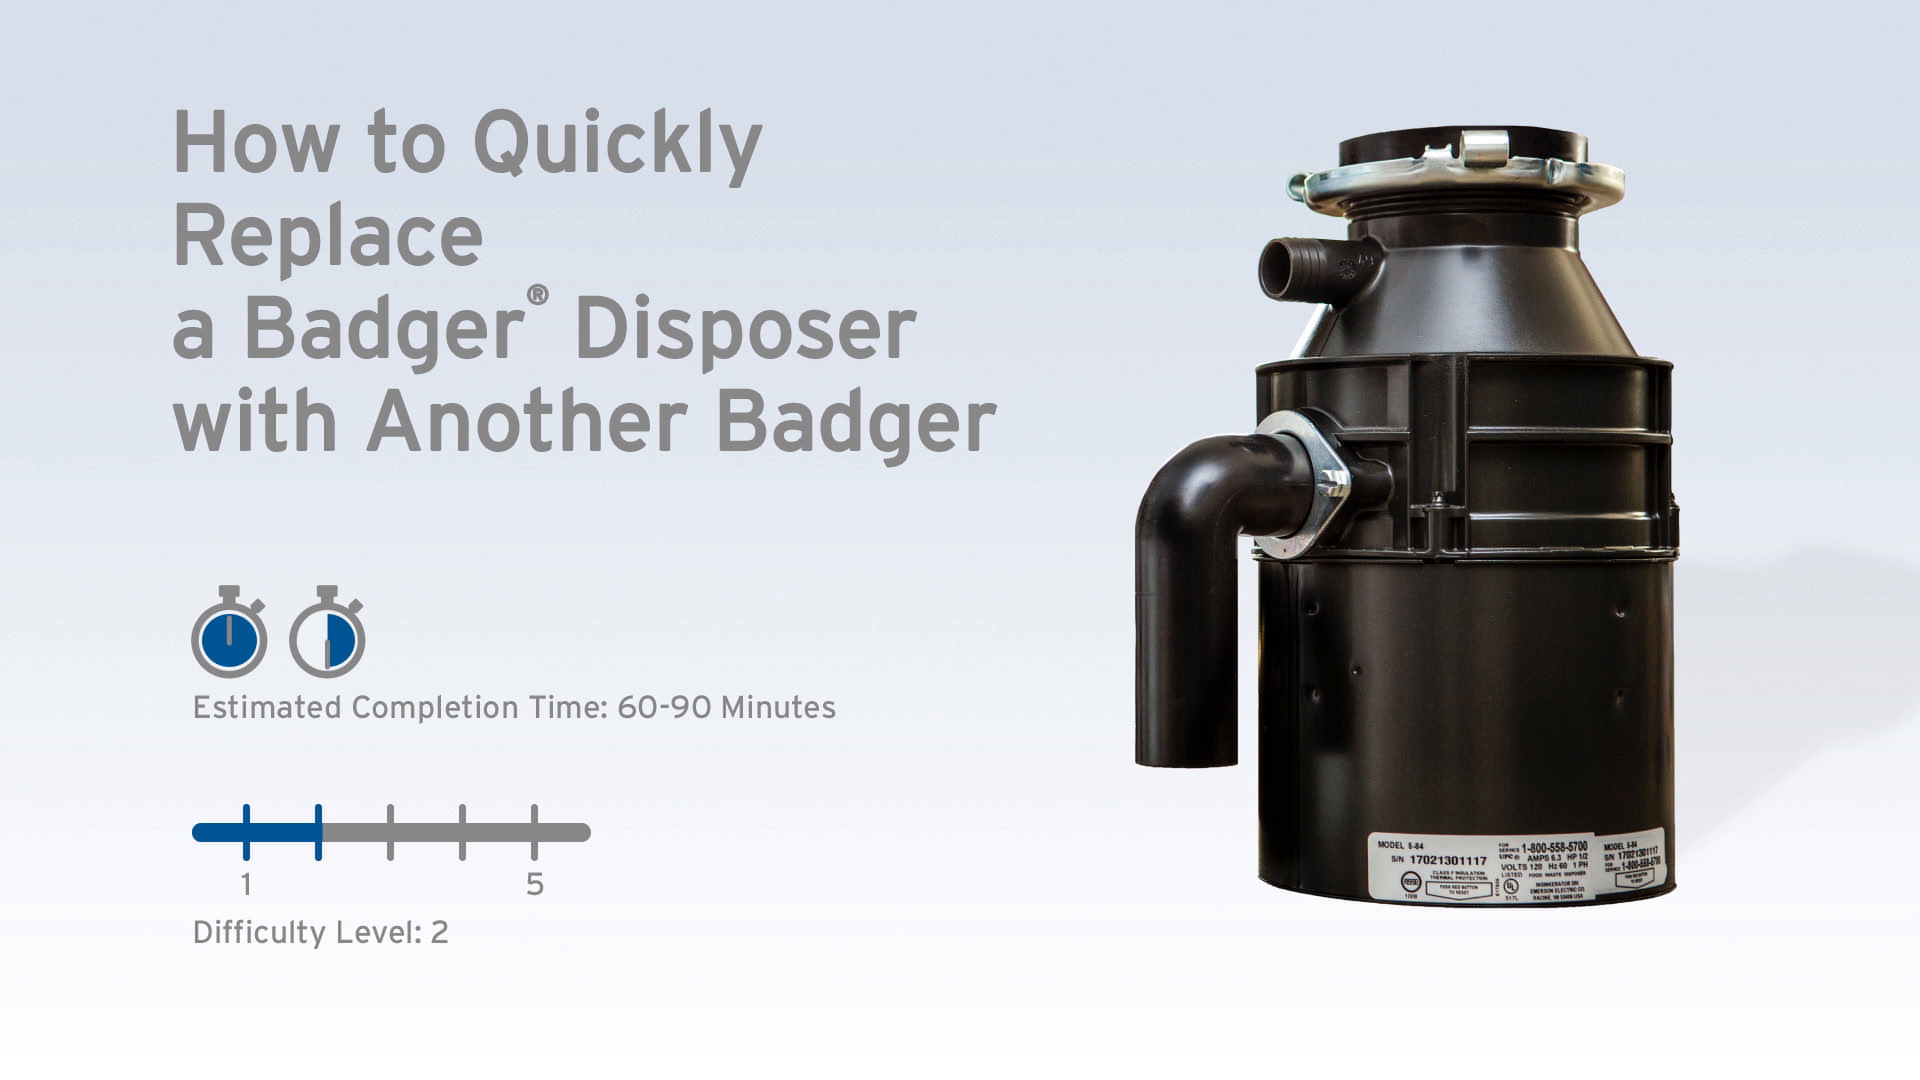 InSinkErator Badger 5 Series 1/2-HP Continuous Feed Garbage